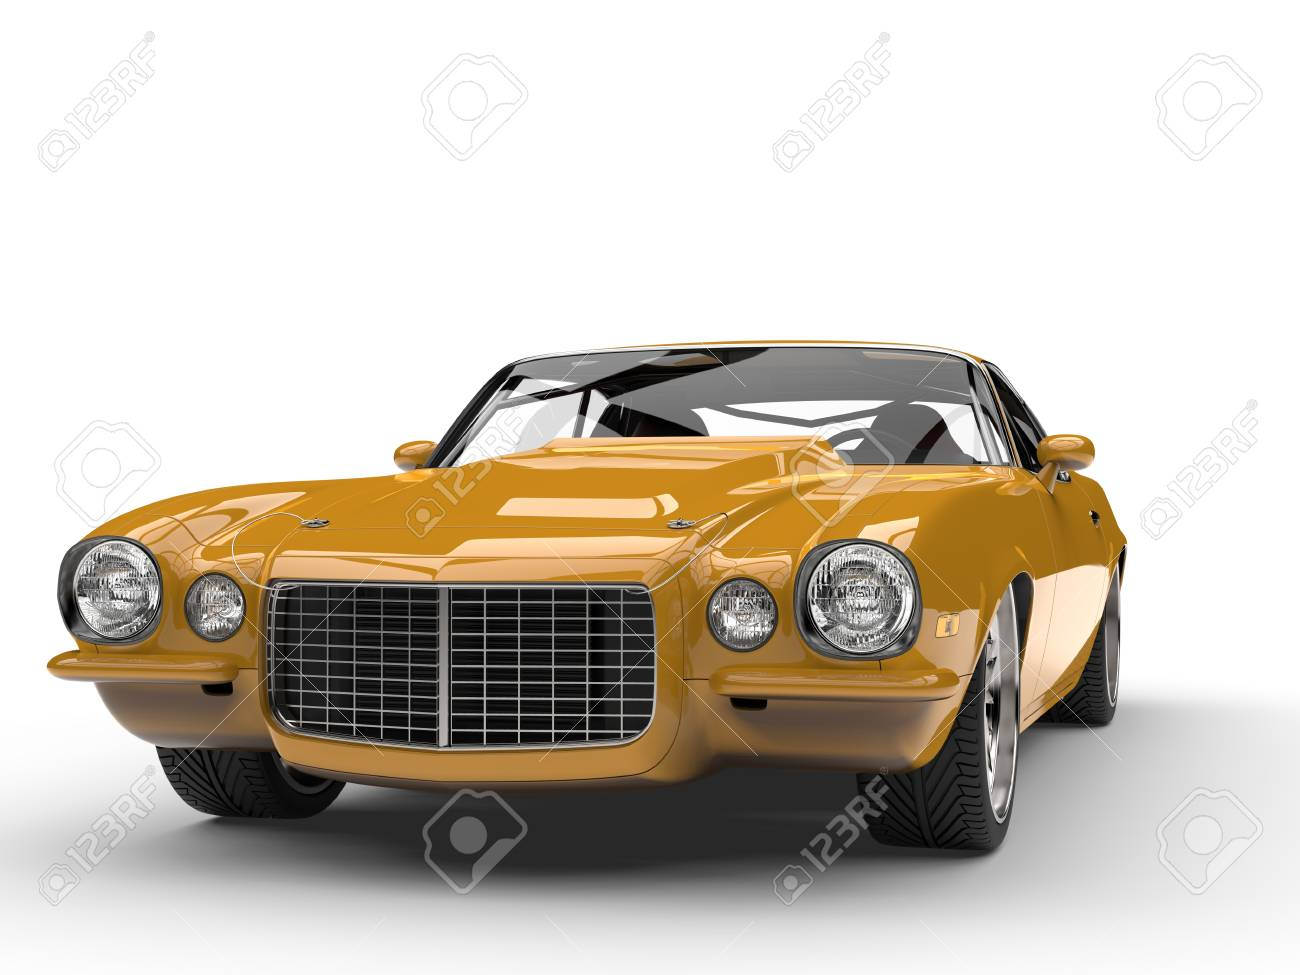 Mustard Yellow Old School Vintage American Car - Front View Stock ...